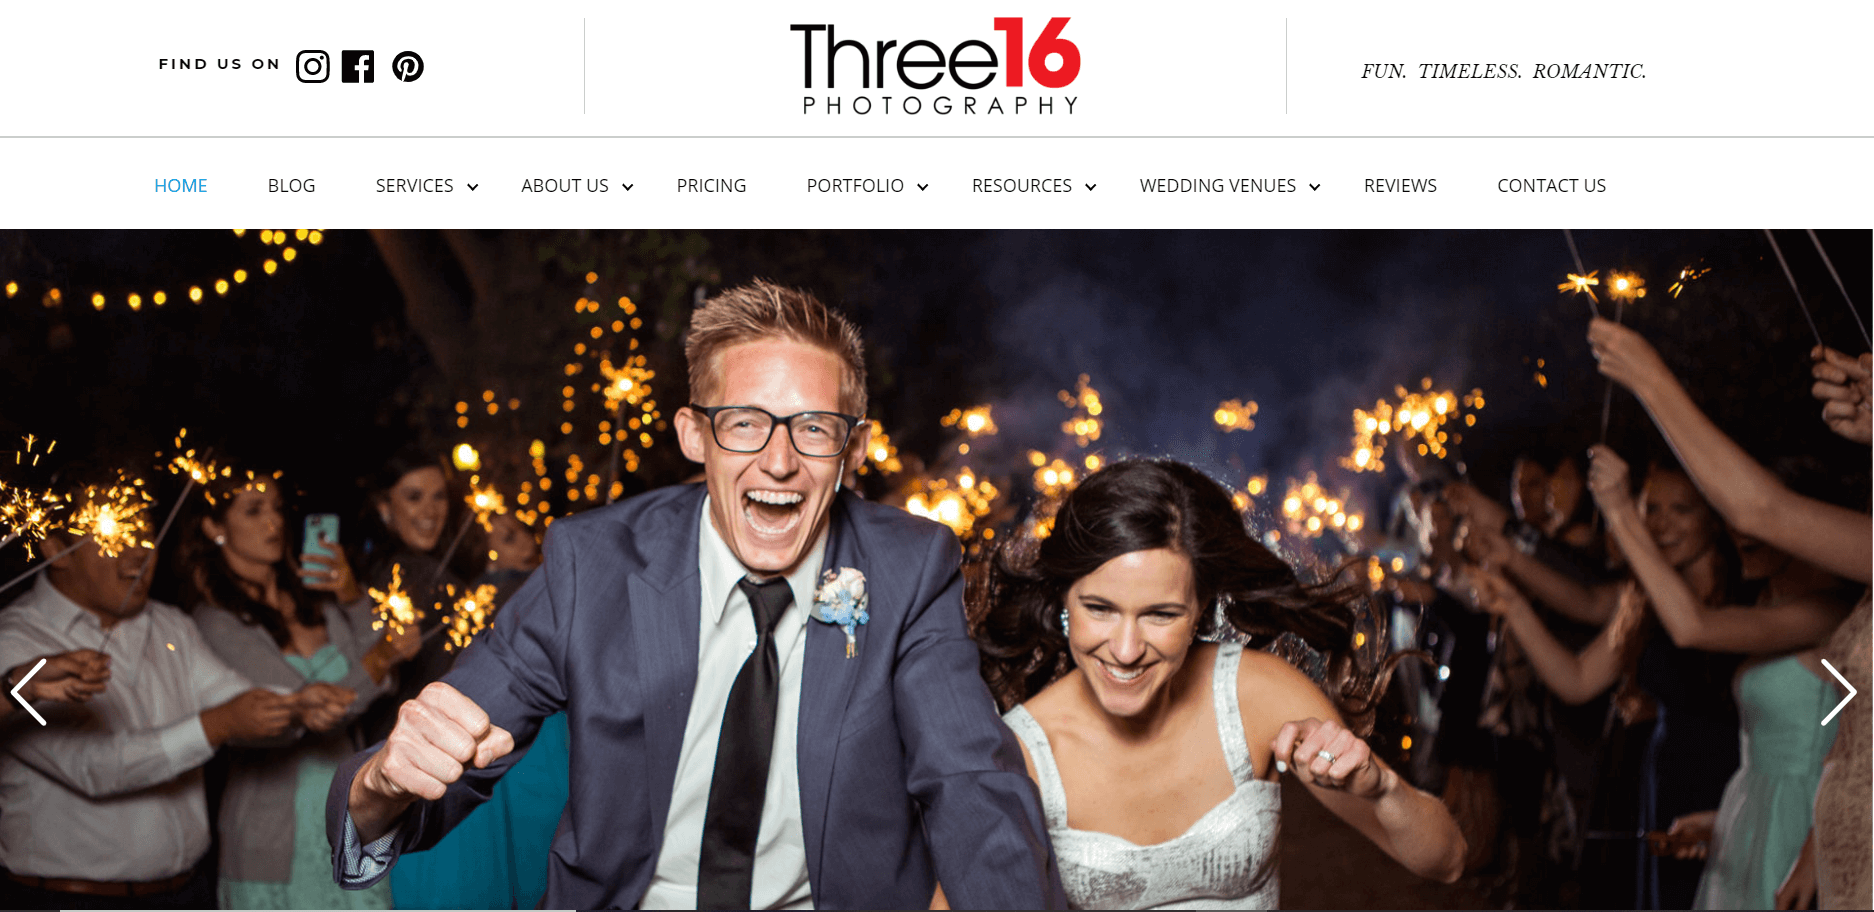 Example of website with happy wedding couple